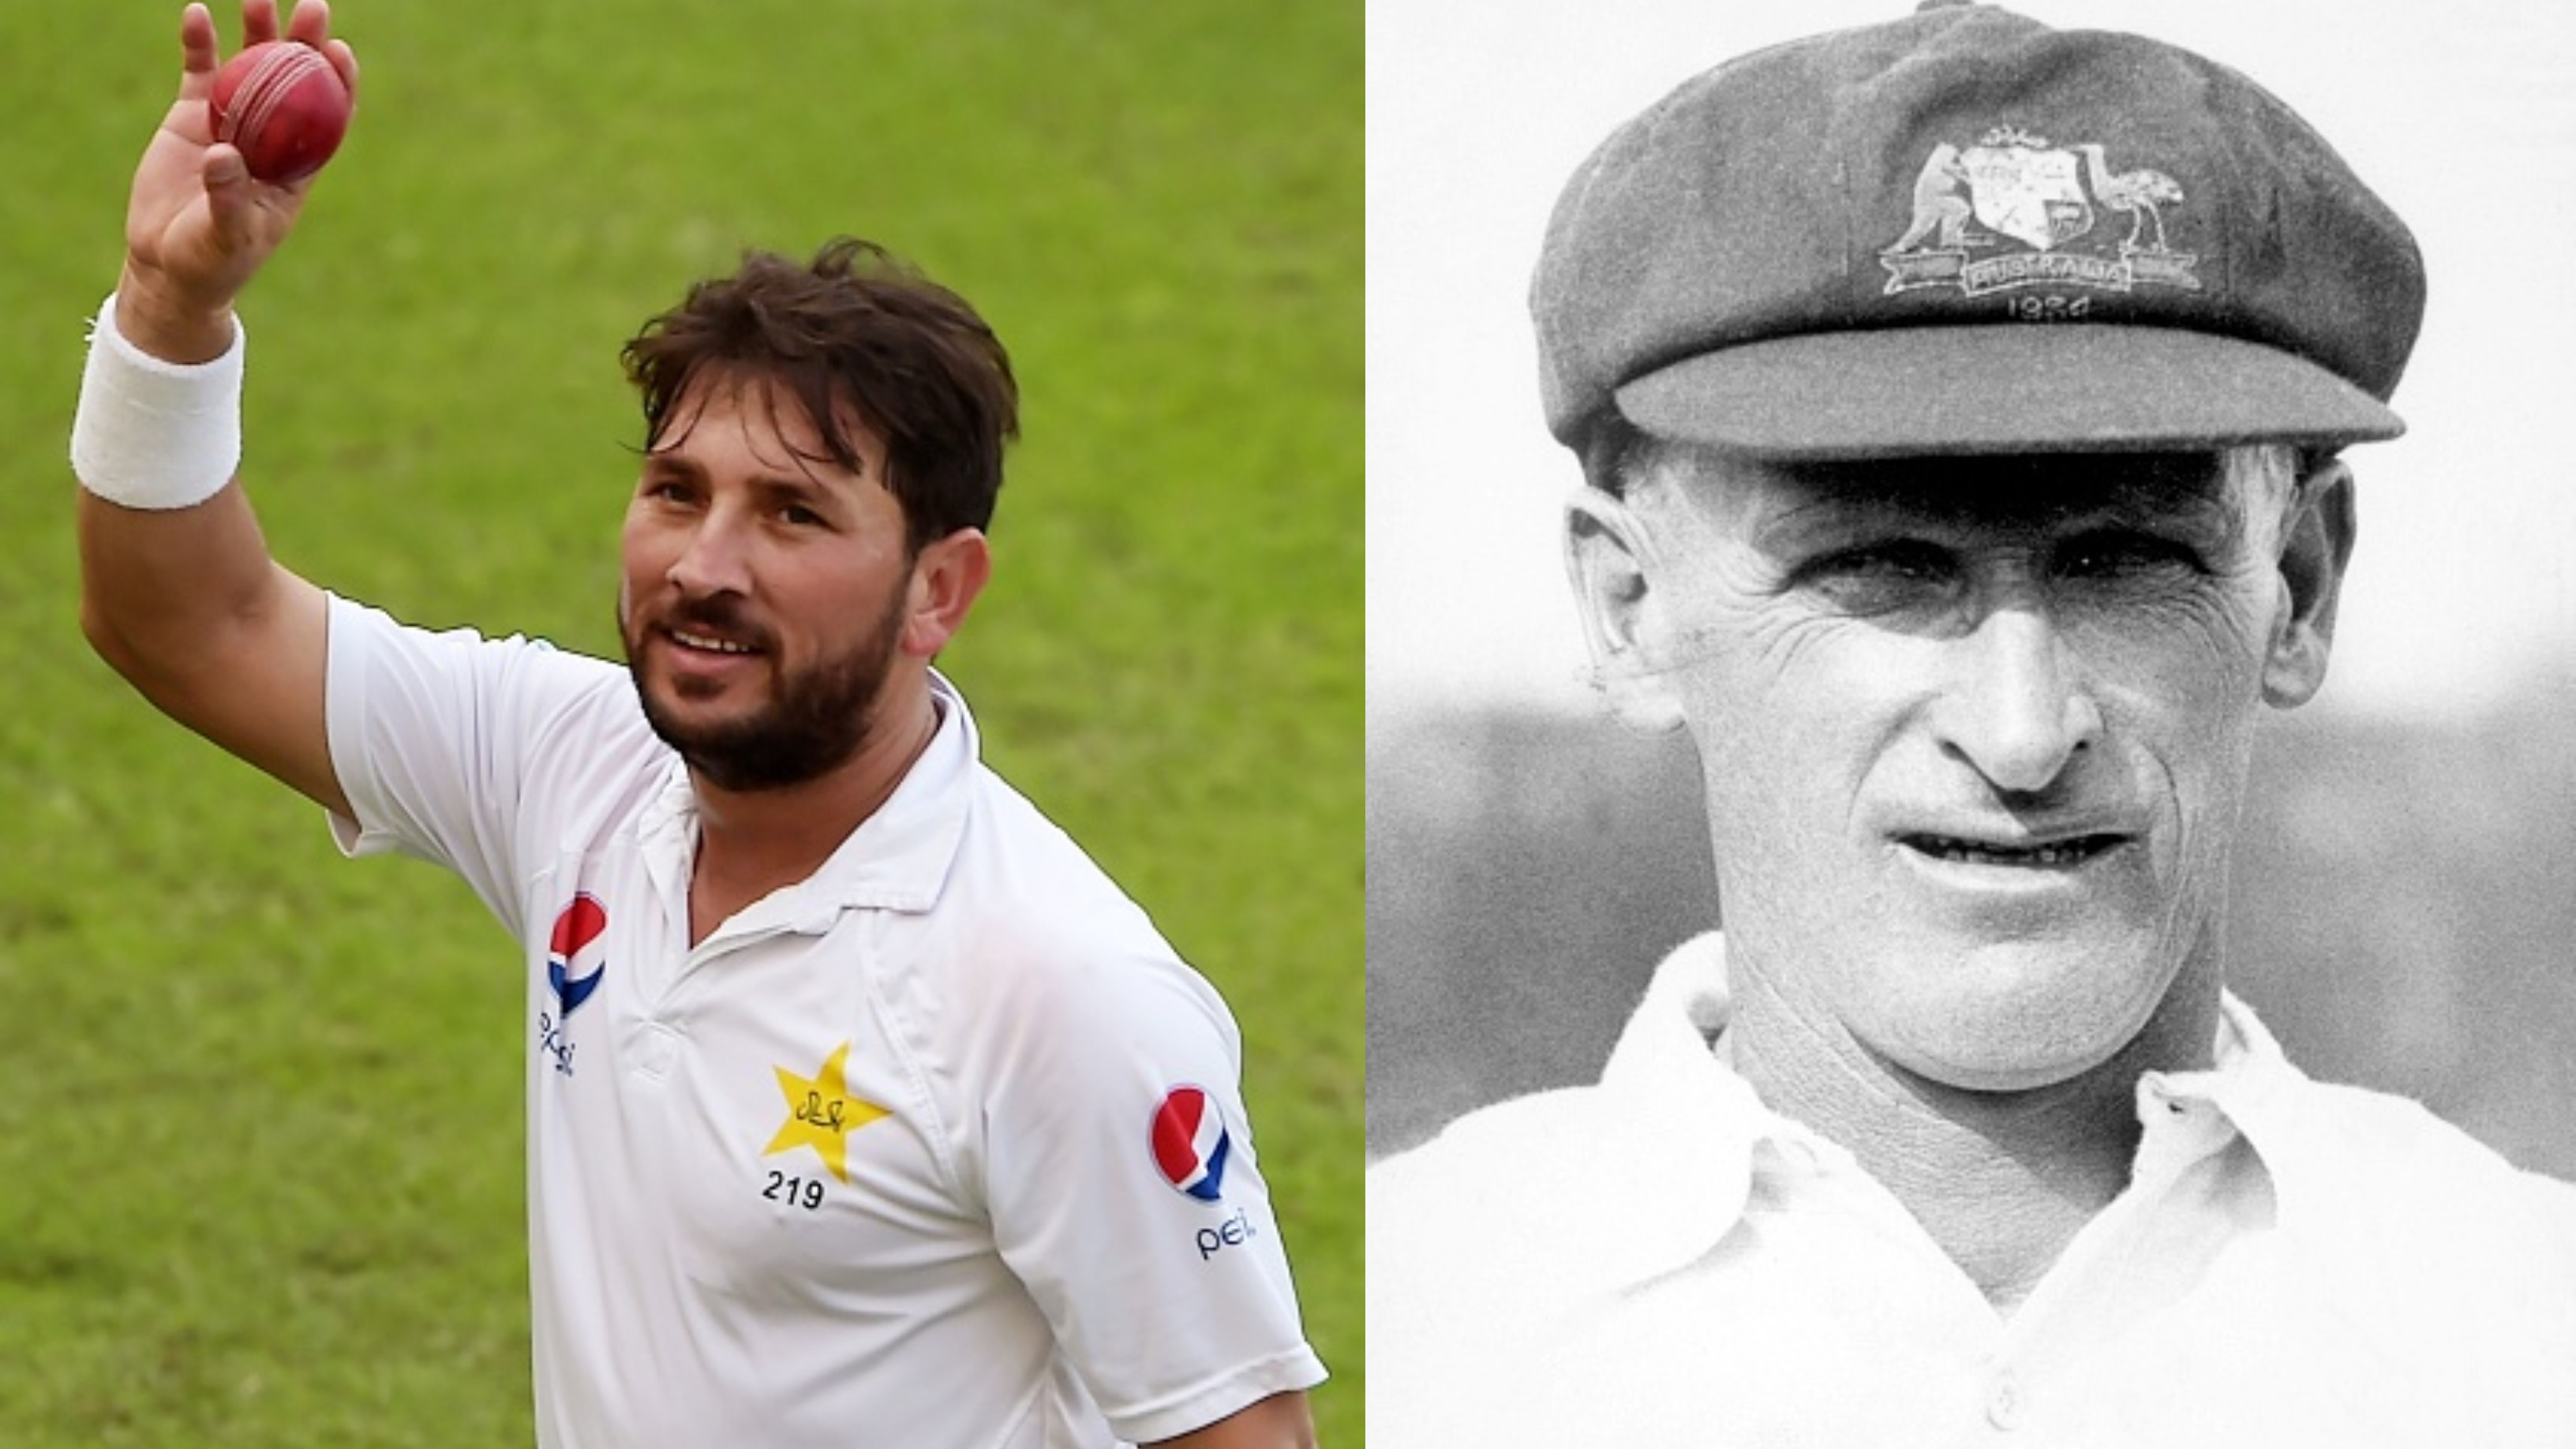 PAK v NZ 2018: Yasir Shah targets Clarrie Grimmett's 93-year-old record in Abu Dhabi